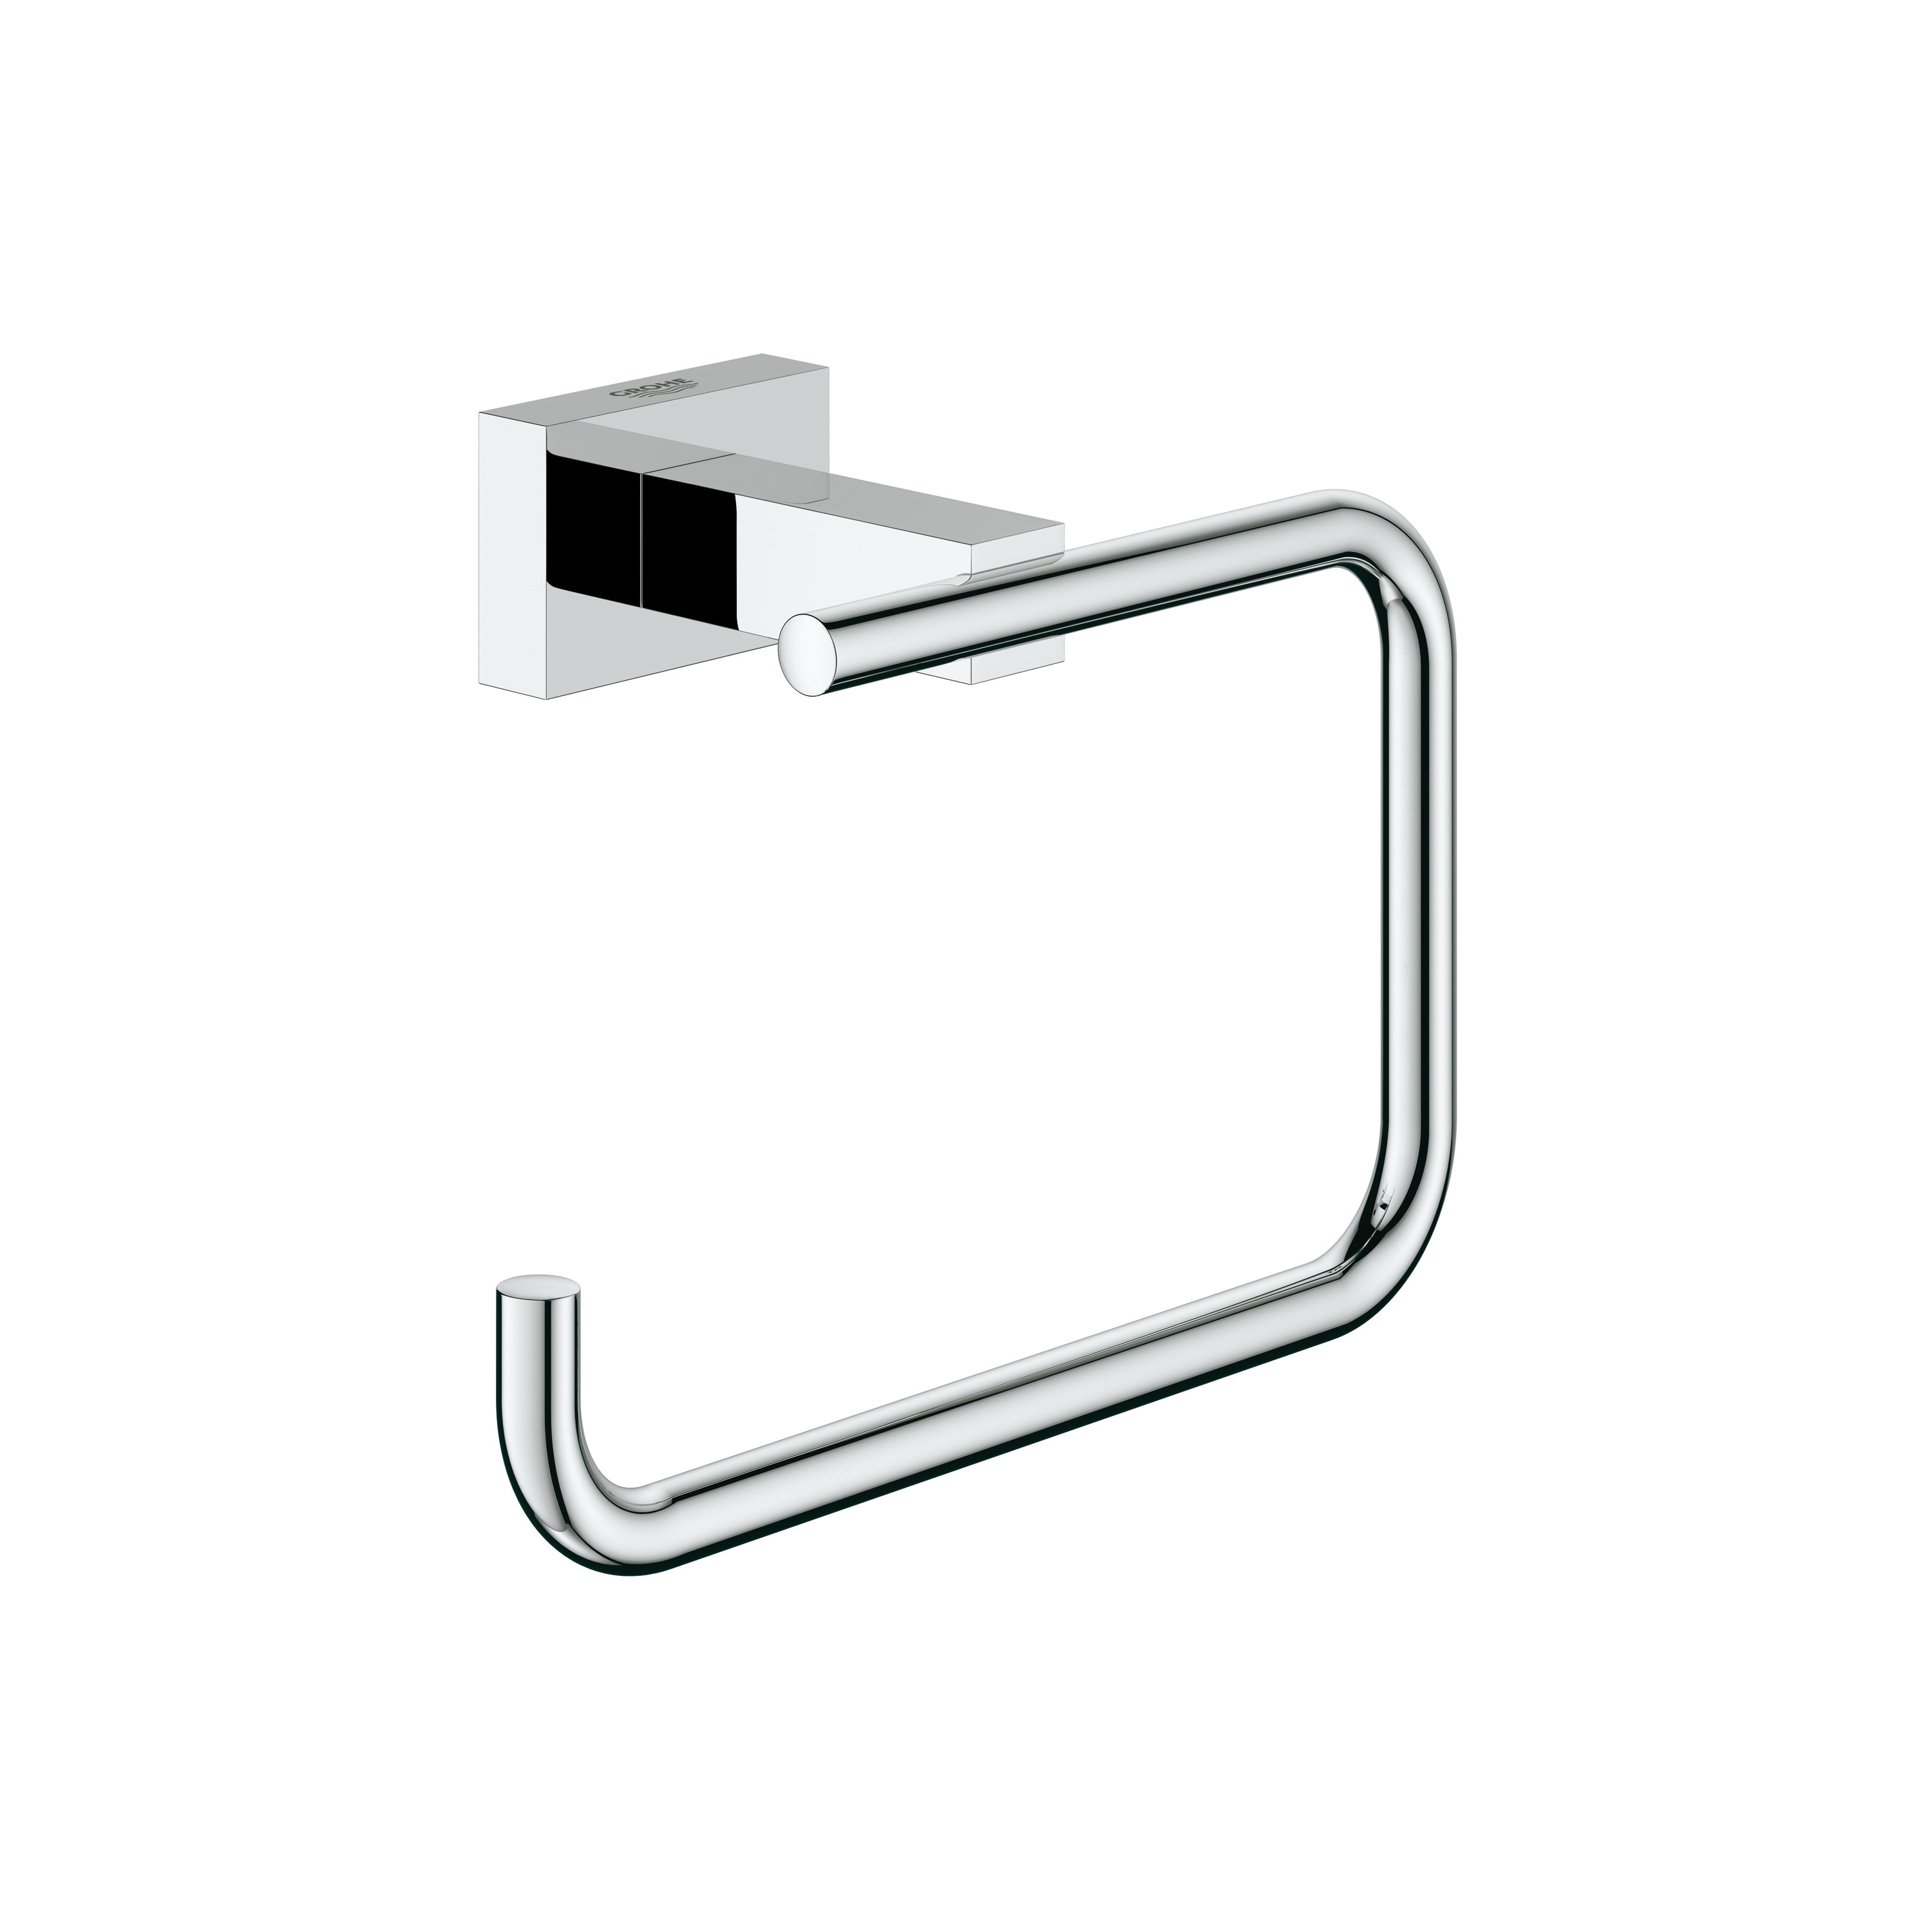 GROHE 40507001 Essentials Cube Toilet Paper Holder Without Cover, 3-7/8 in H, Brass, StarLight® Chrome Plated, Import